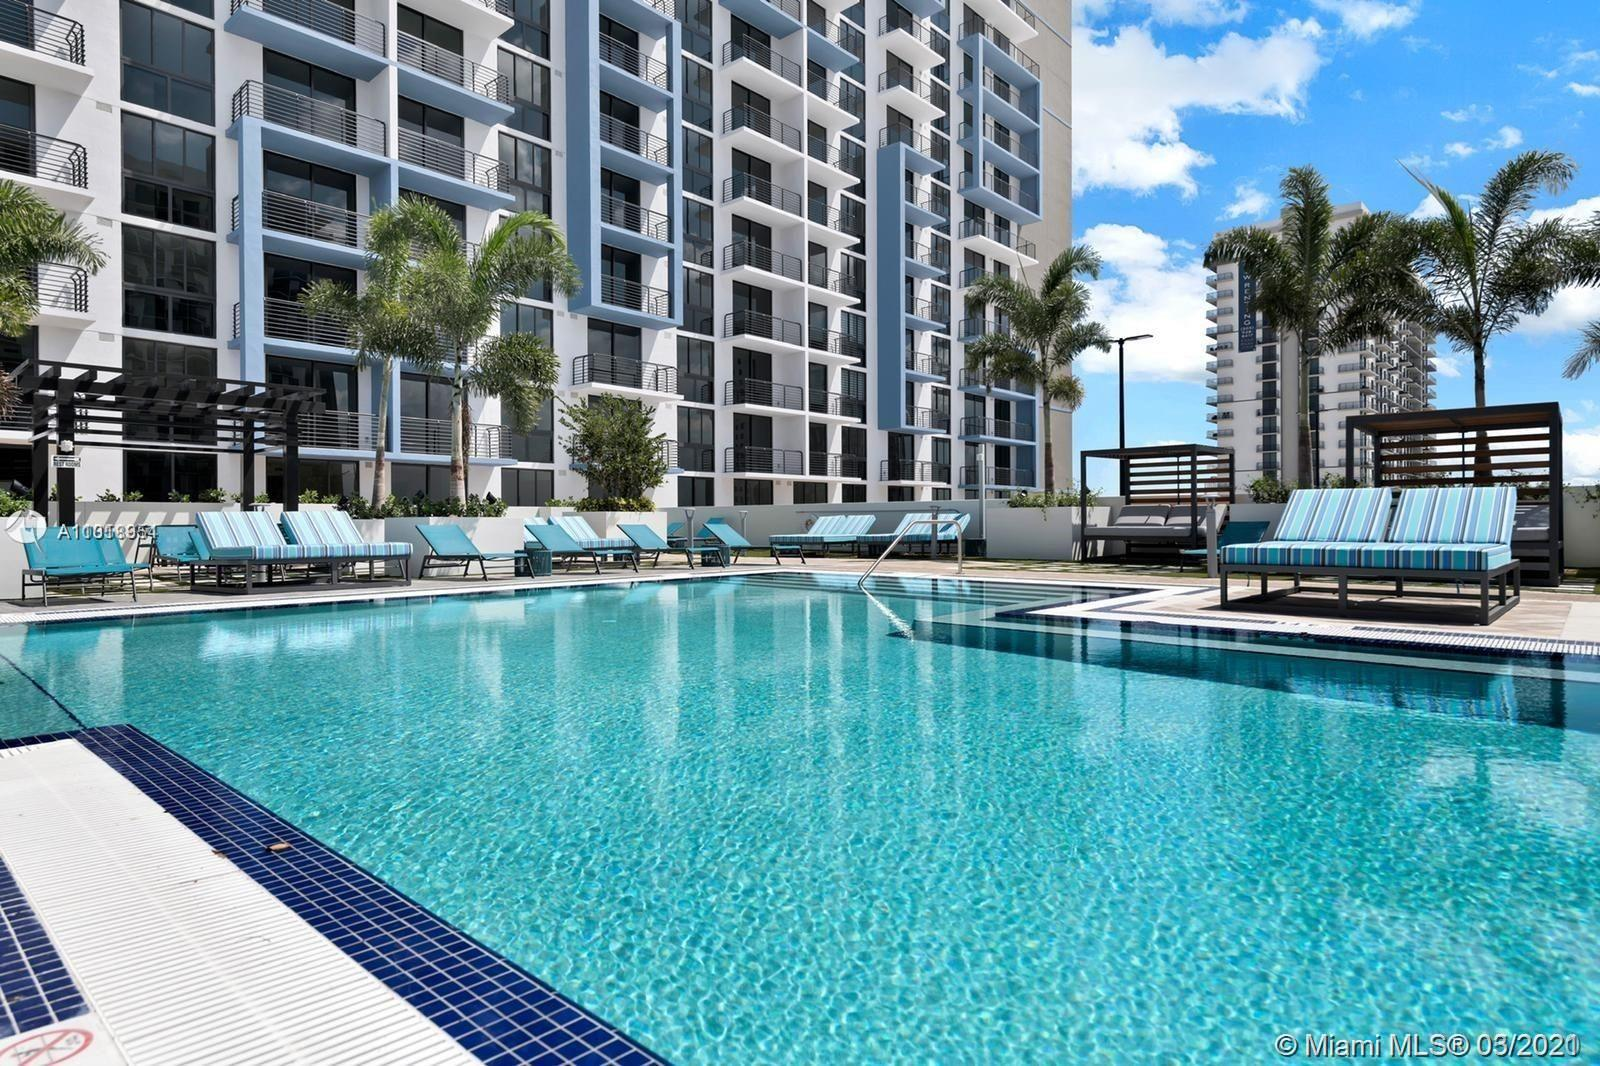 5350 Park #1216 - 5350 NW 84th Ave #1216, Doral, FL 33166